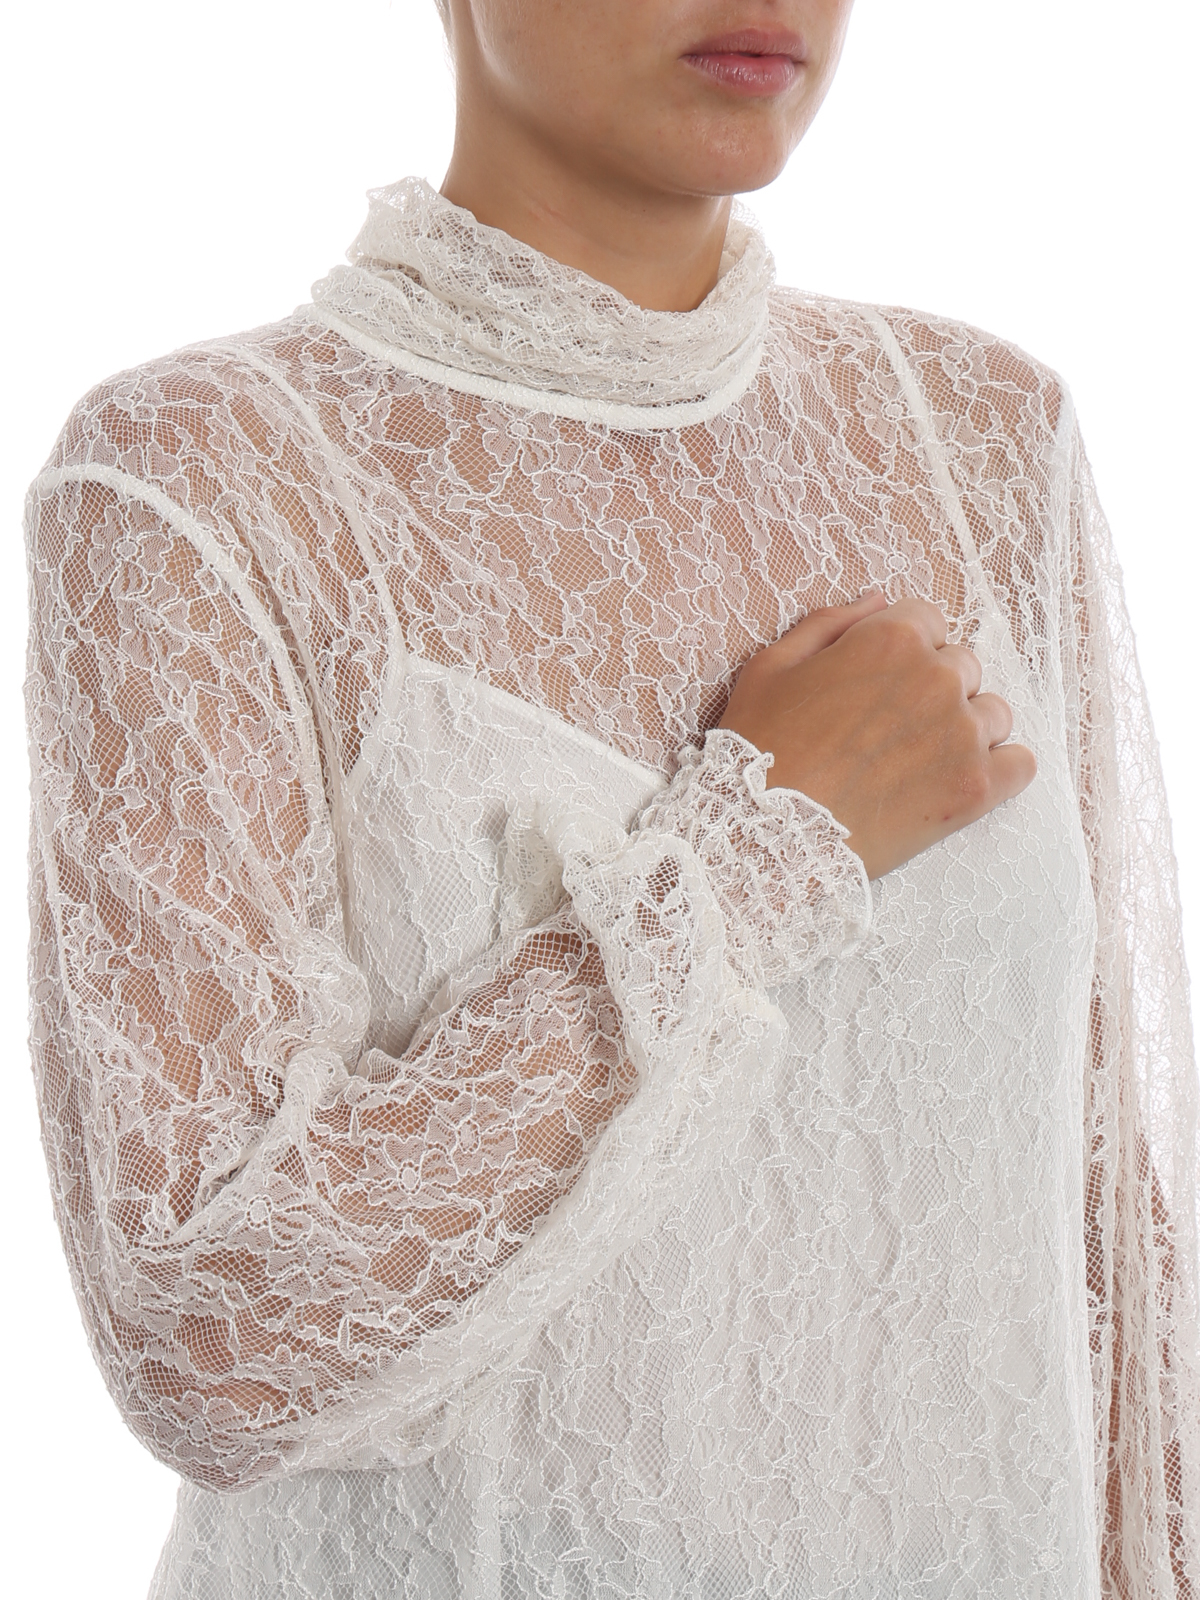 b3c19ef019e7f9 See by Chloé - White long sleeve lace blouse - blouses - S18AHT25036110